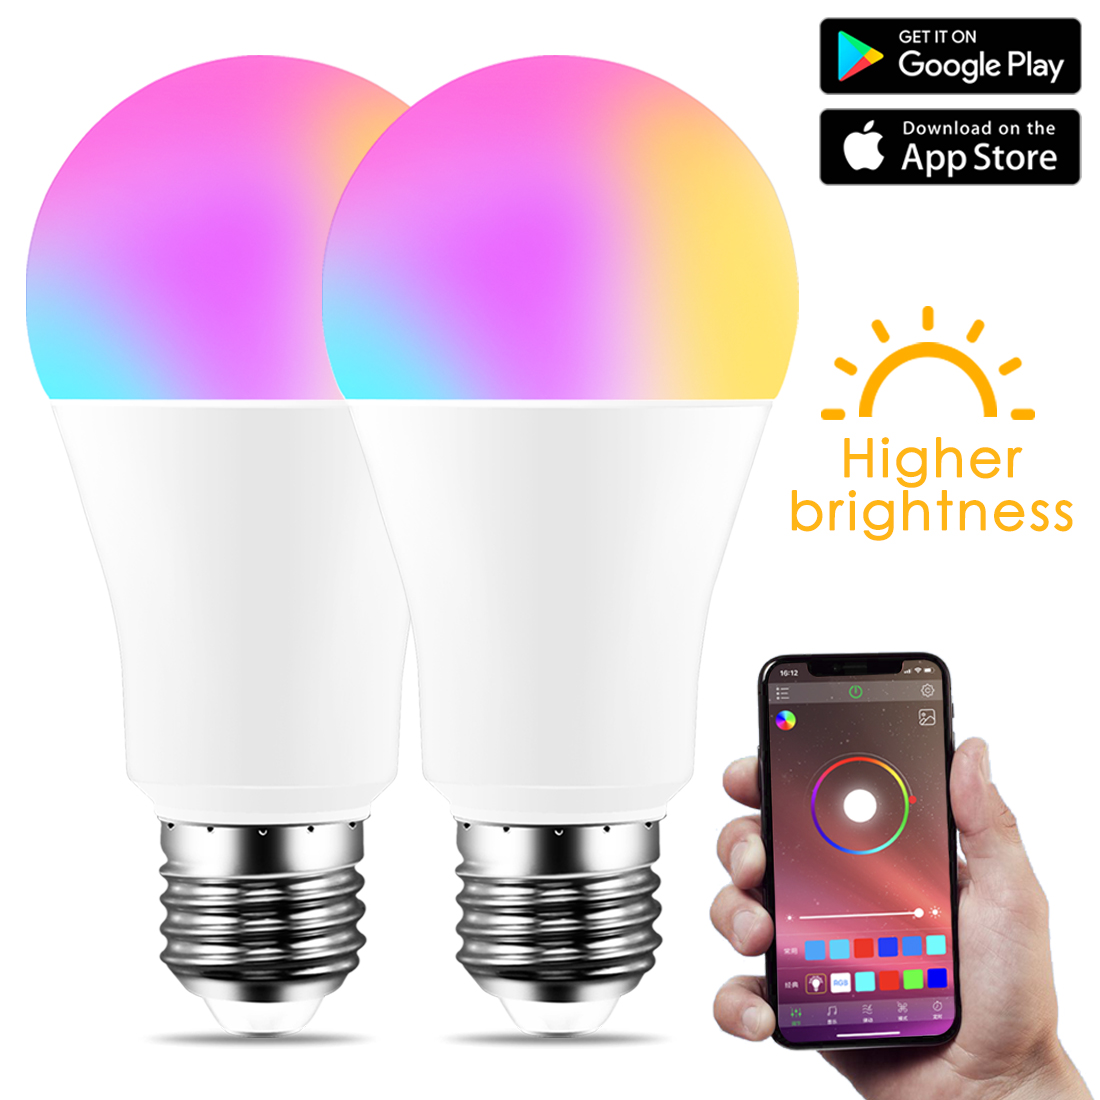 New Wireless Bluetooth 4.0 Smart Bulb home Lighting lamp 10W E27 Magic RGB +W LED Change Color Light Bulb Dimmable IOS /Android image